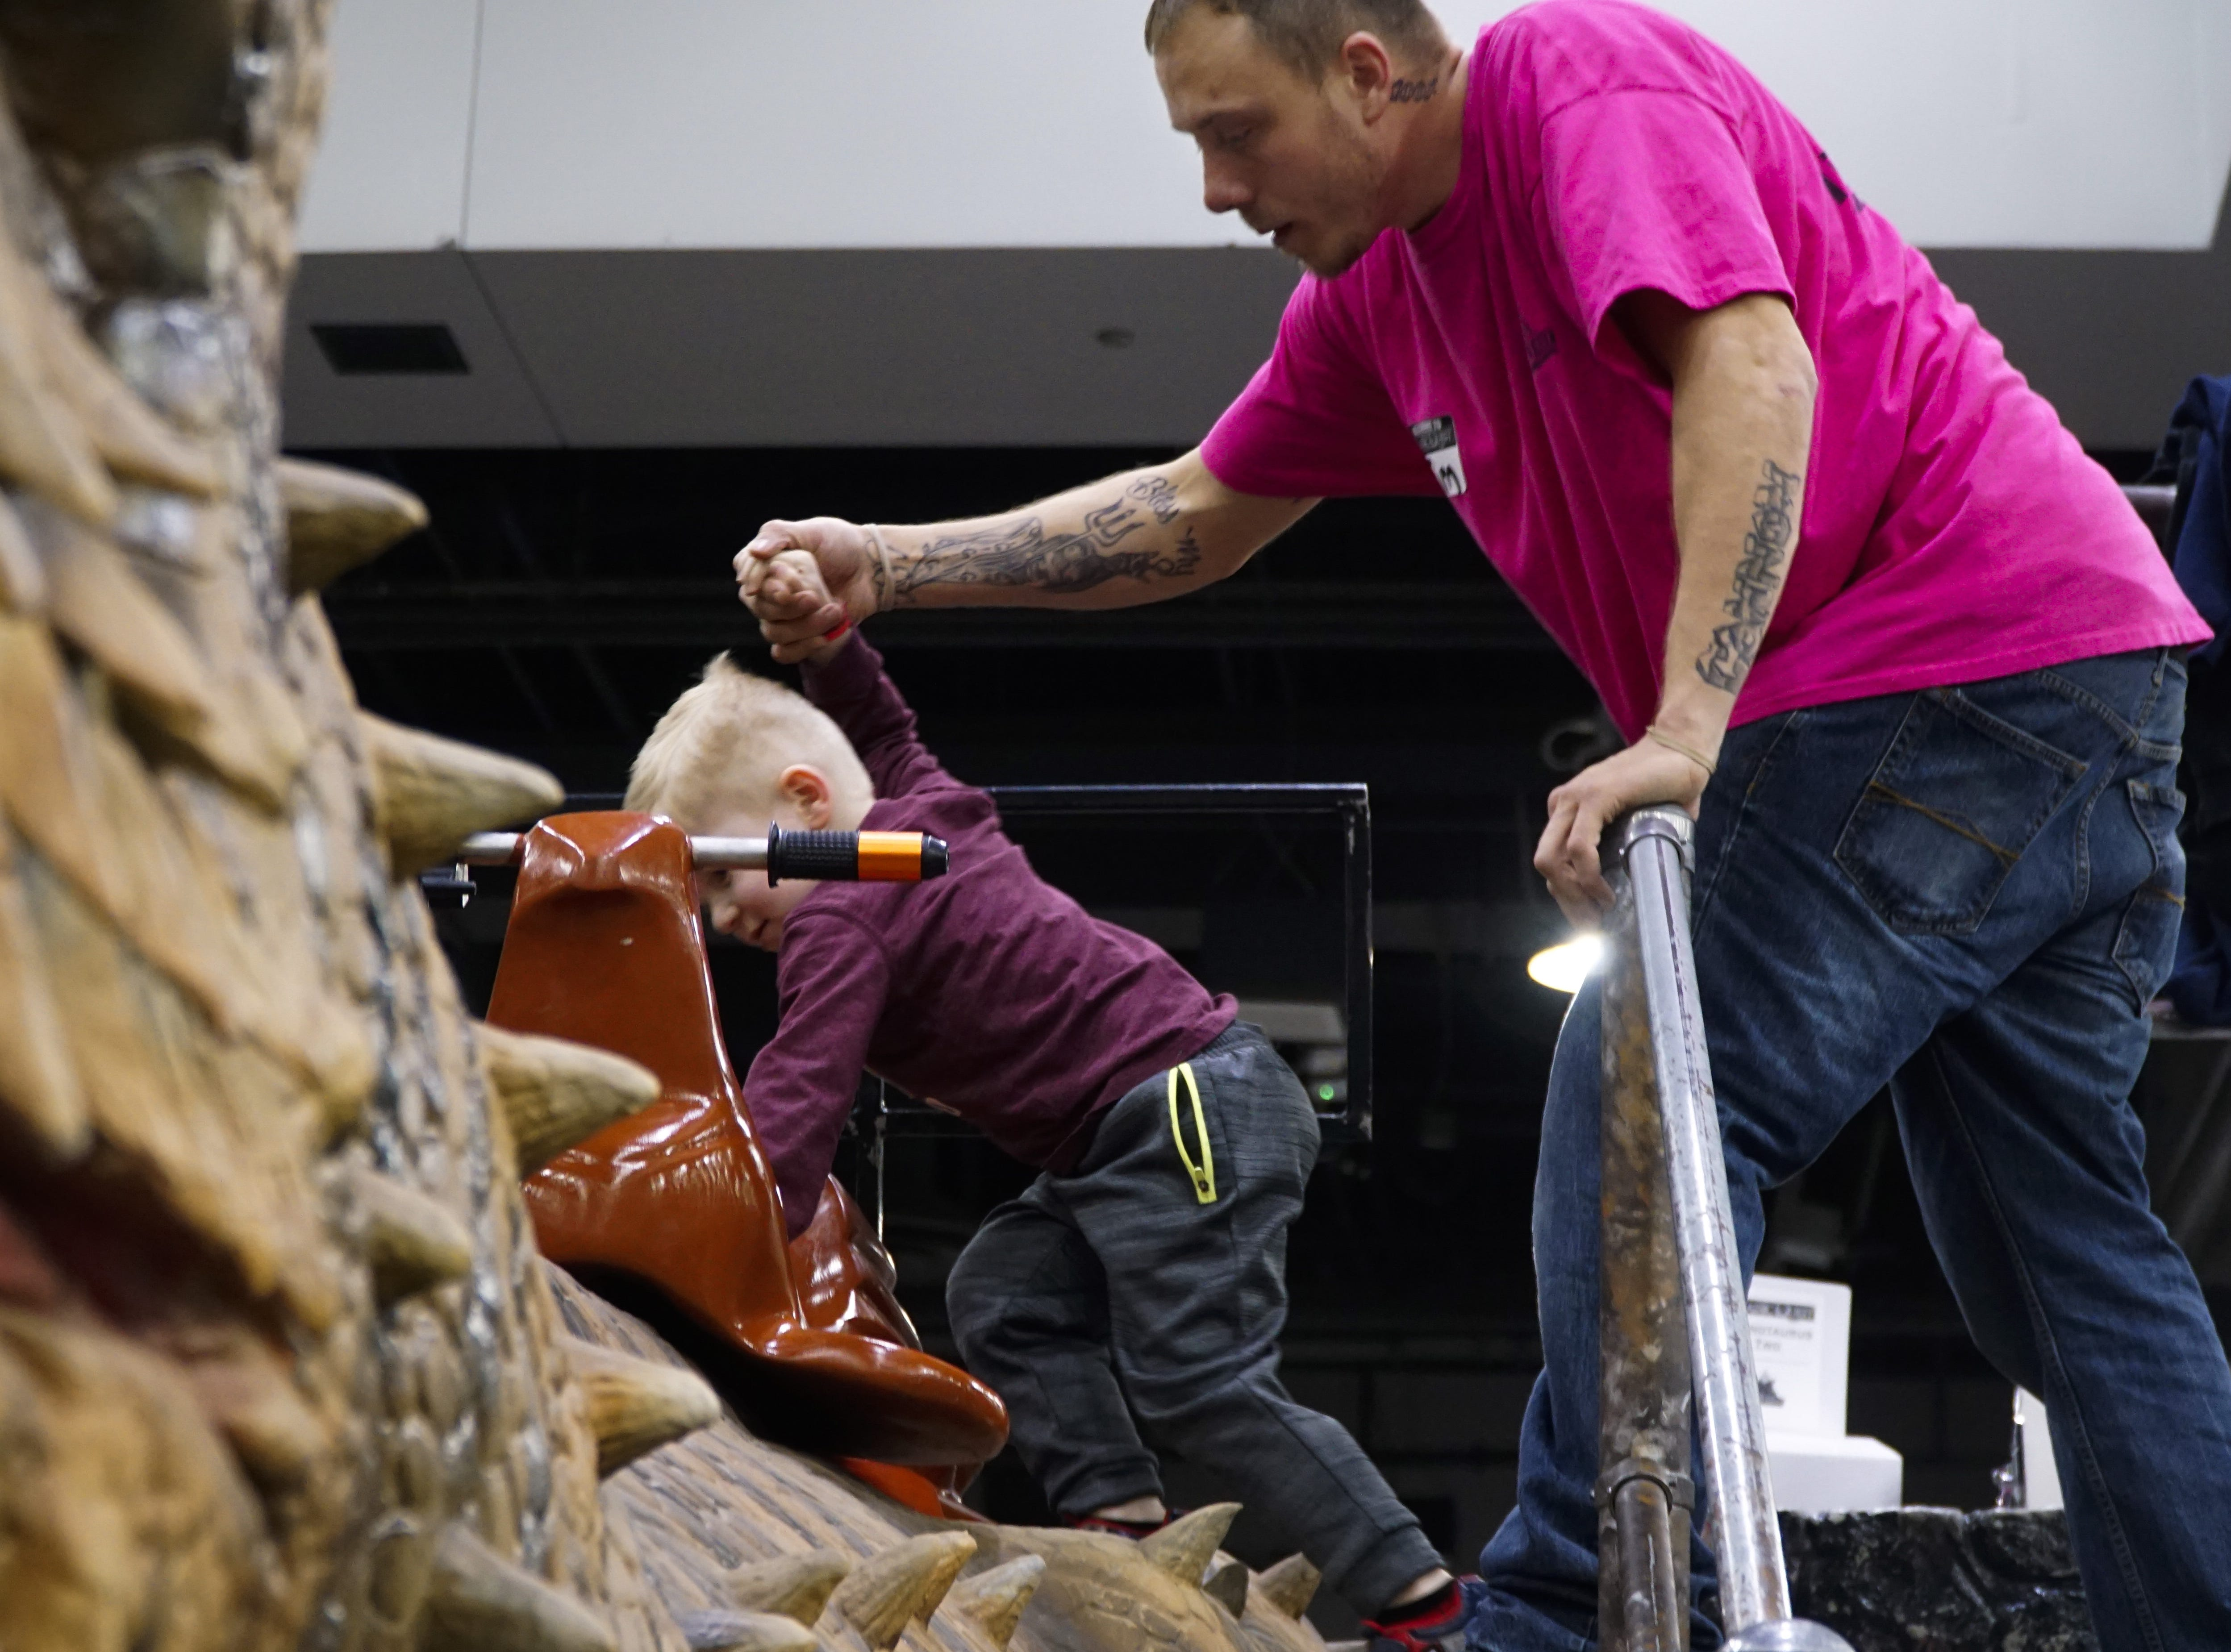 """Timothy Tackett holds the hand of a young rider at his first day working the dinosaur rides at Jurassic Quest, March 9, 2019. """"It's nice working with kids,"""" said Tackett, who spent most of the afternoon carrying younger attendees to their parents"""